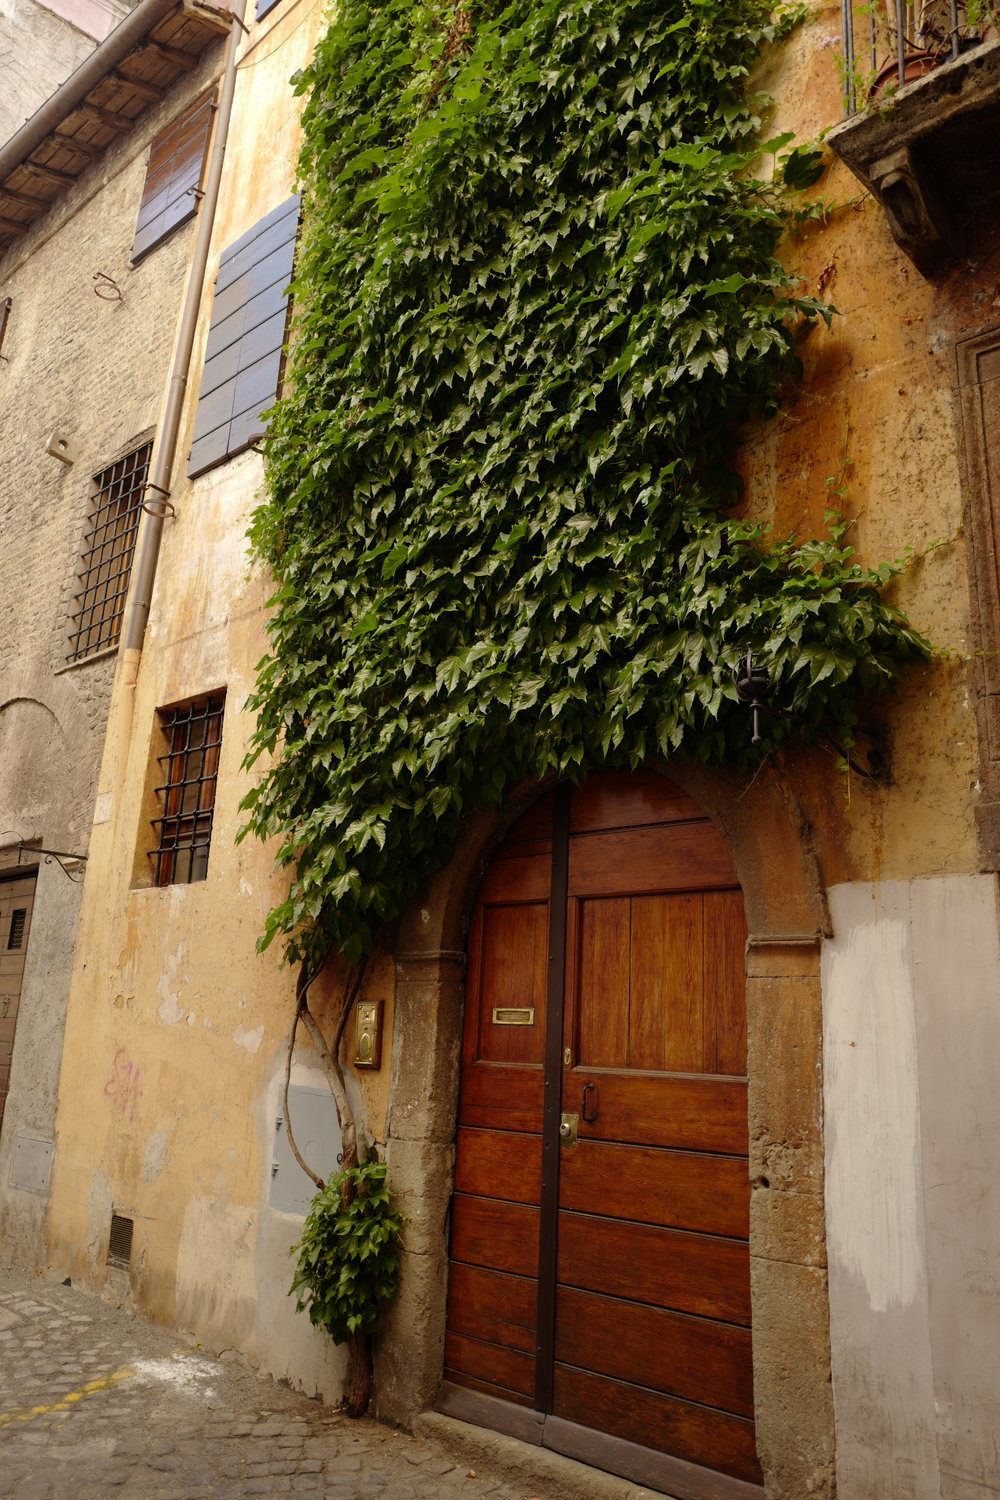 Vine covered walls, one of my favorite small details seen in Rome